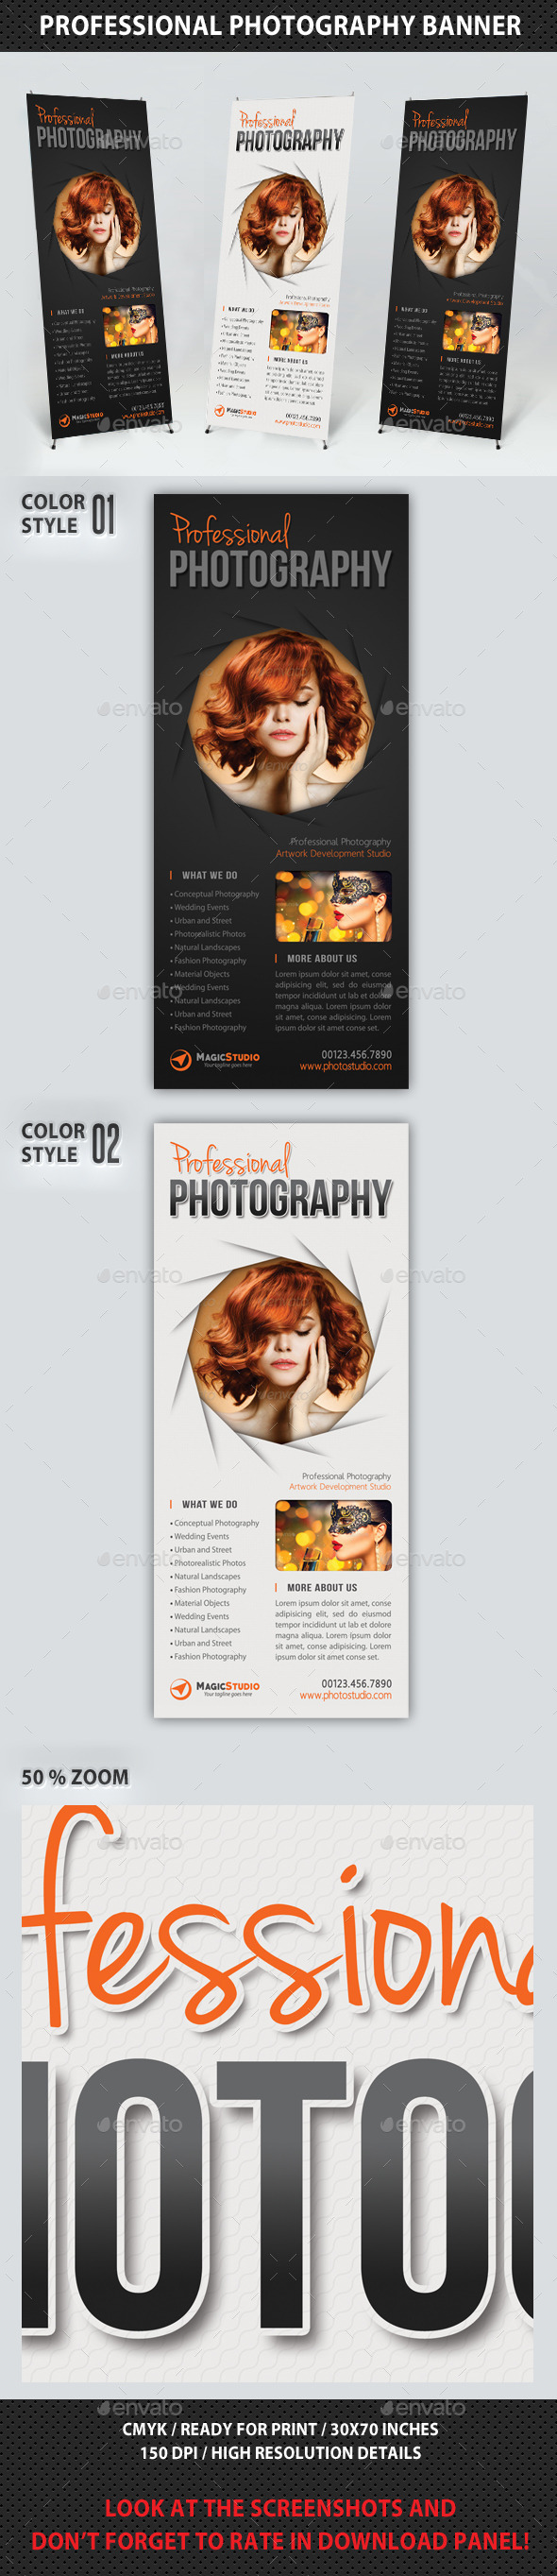 Photography Studio Multipurpose Banner 14 - Signage Print Templates